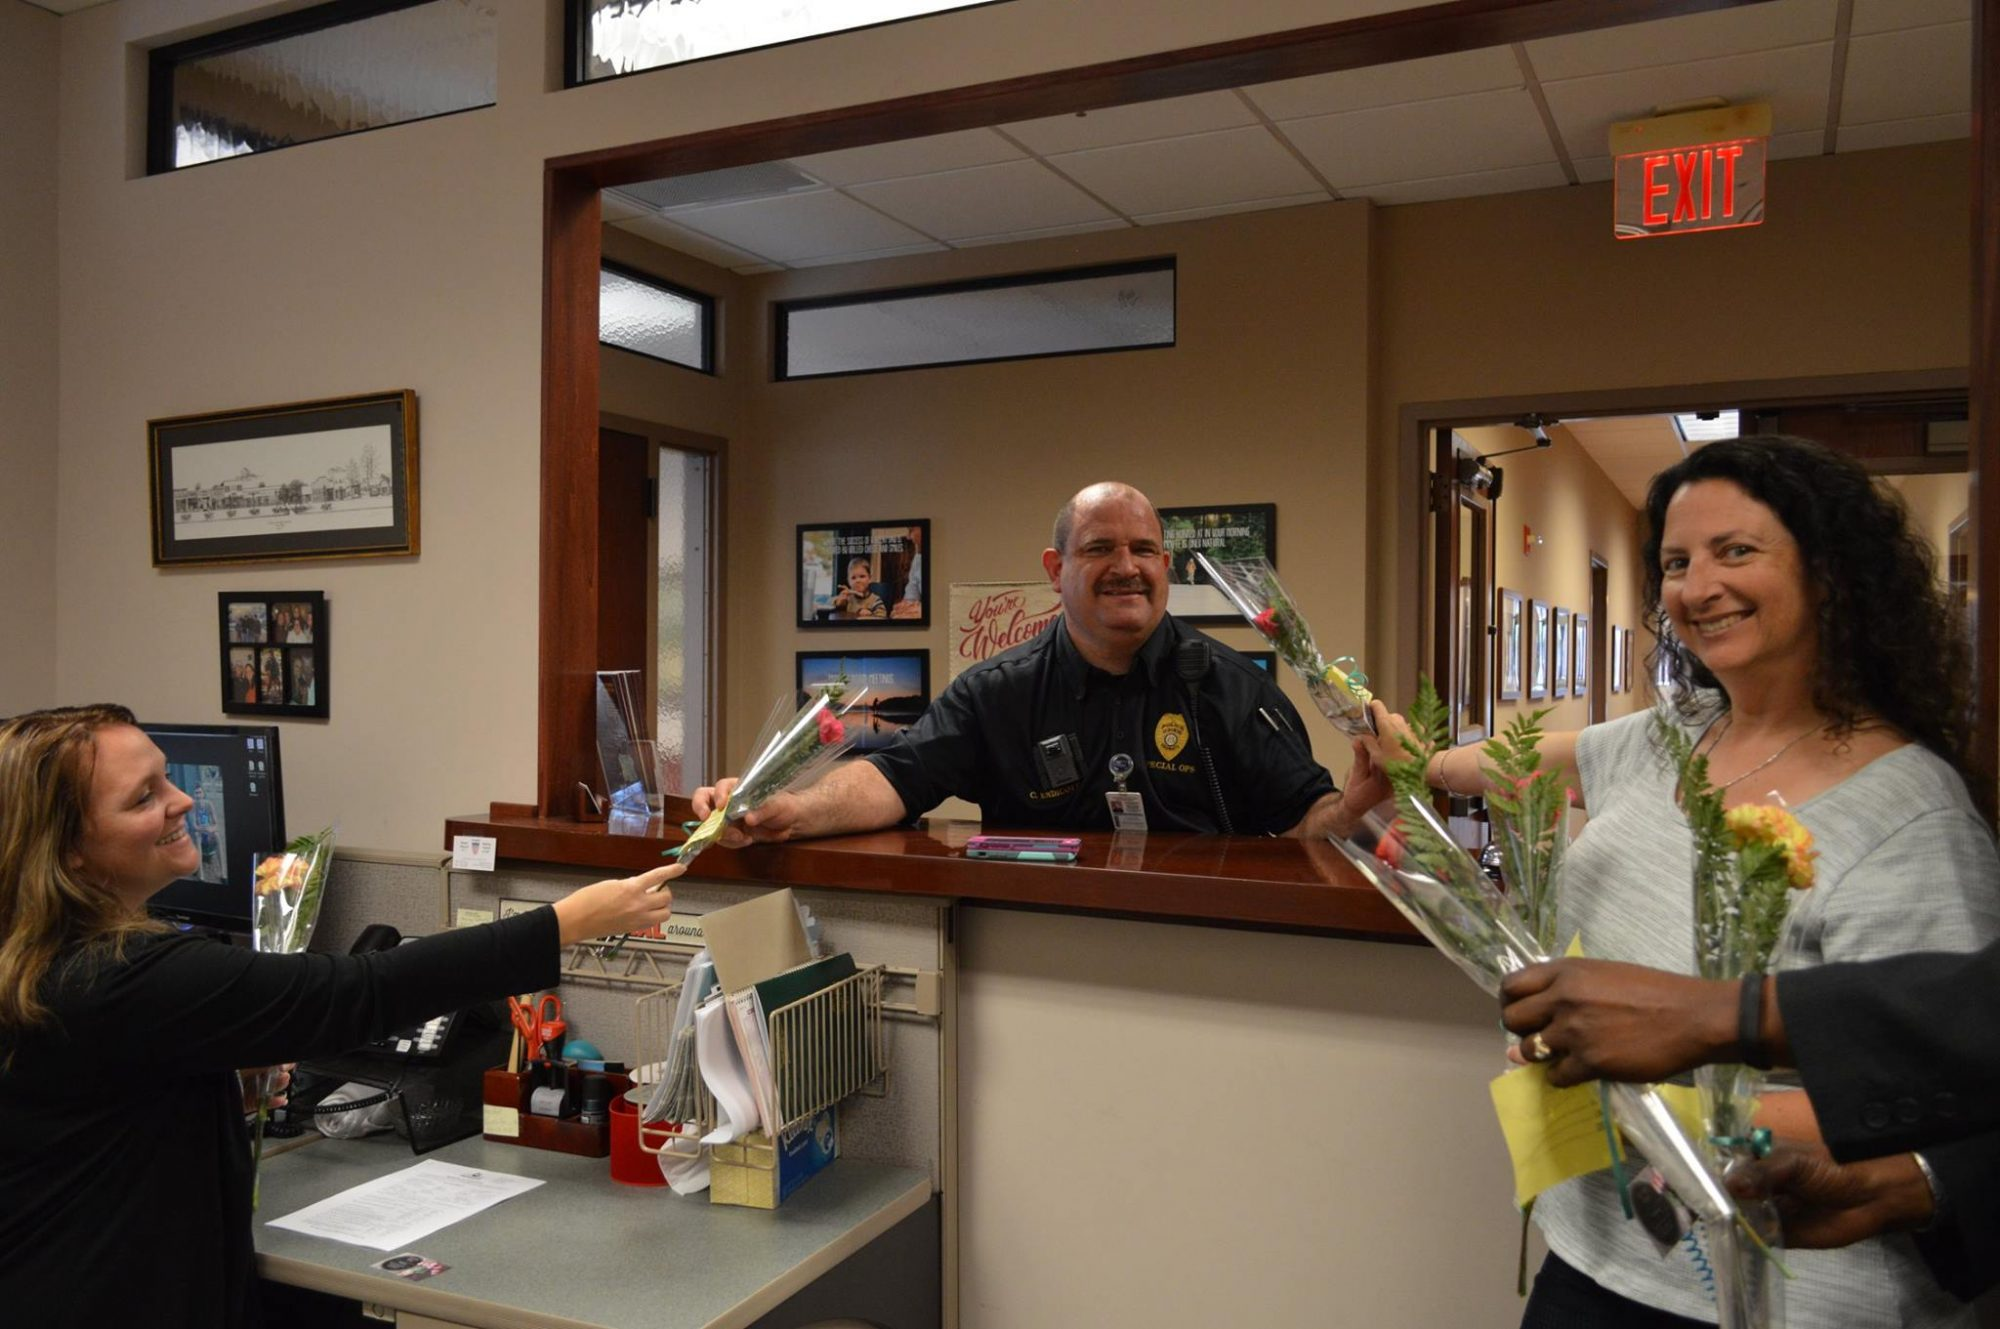 Police Officer Handing Out Flowers